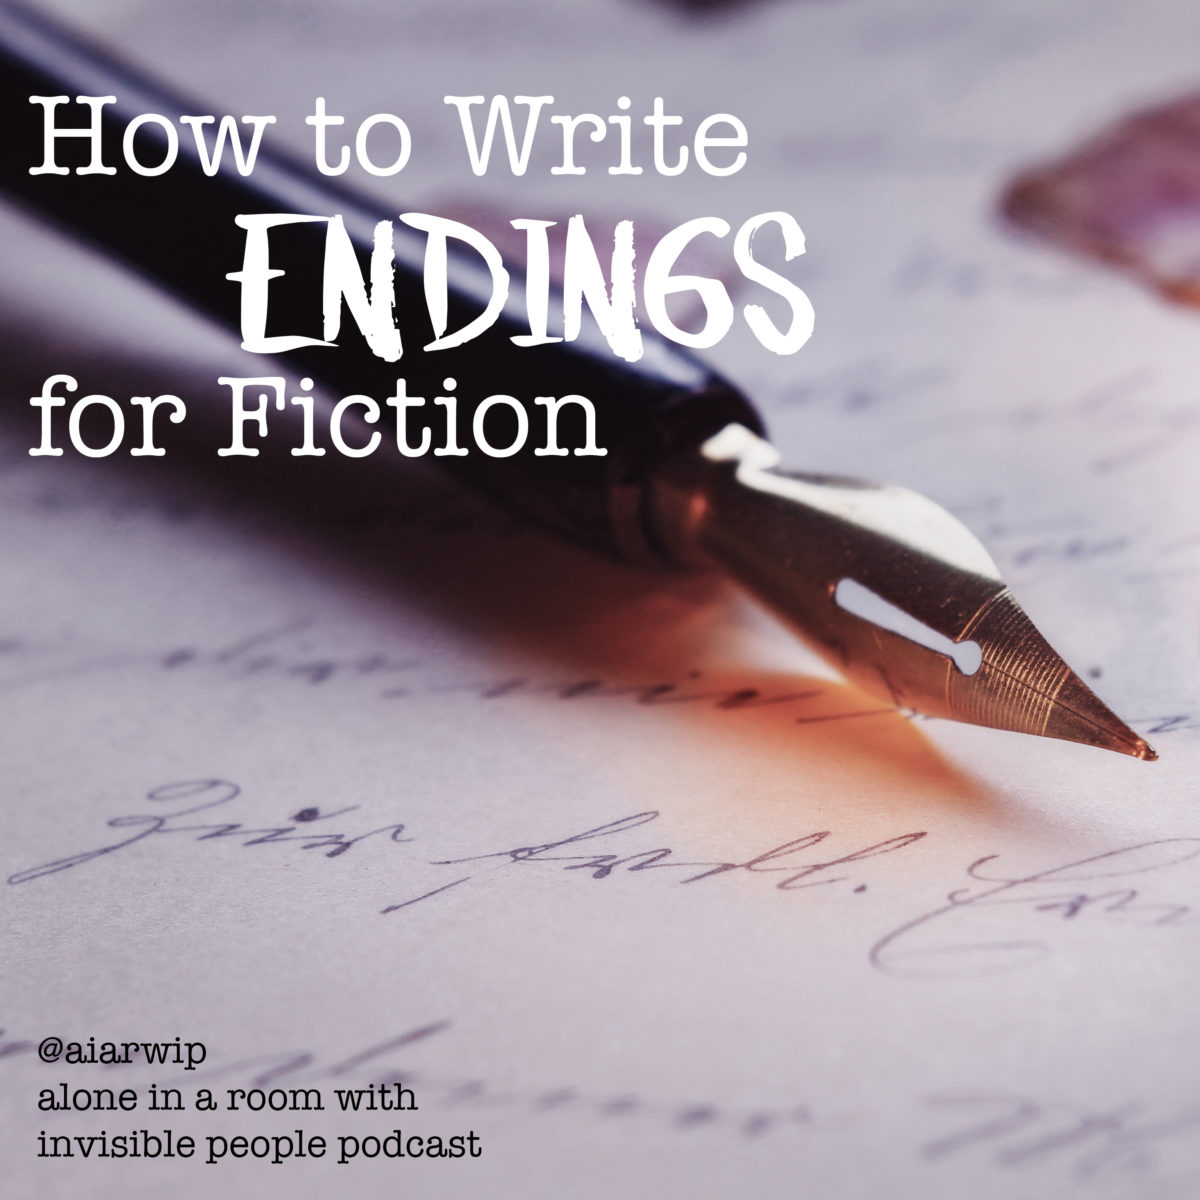 Episode 45: How to Write Endings for Fiction